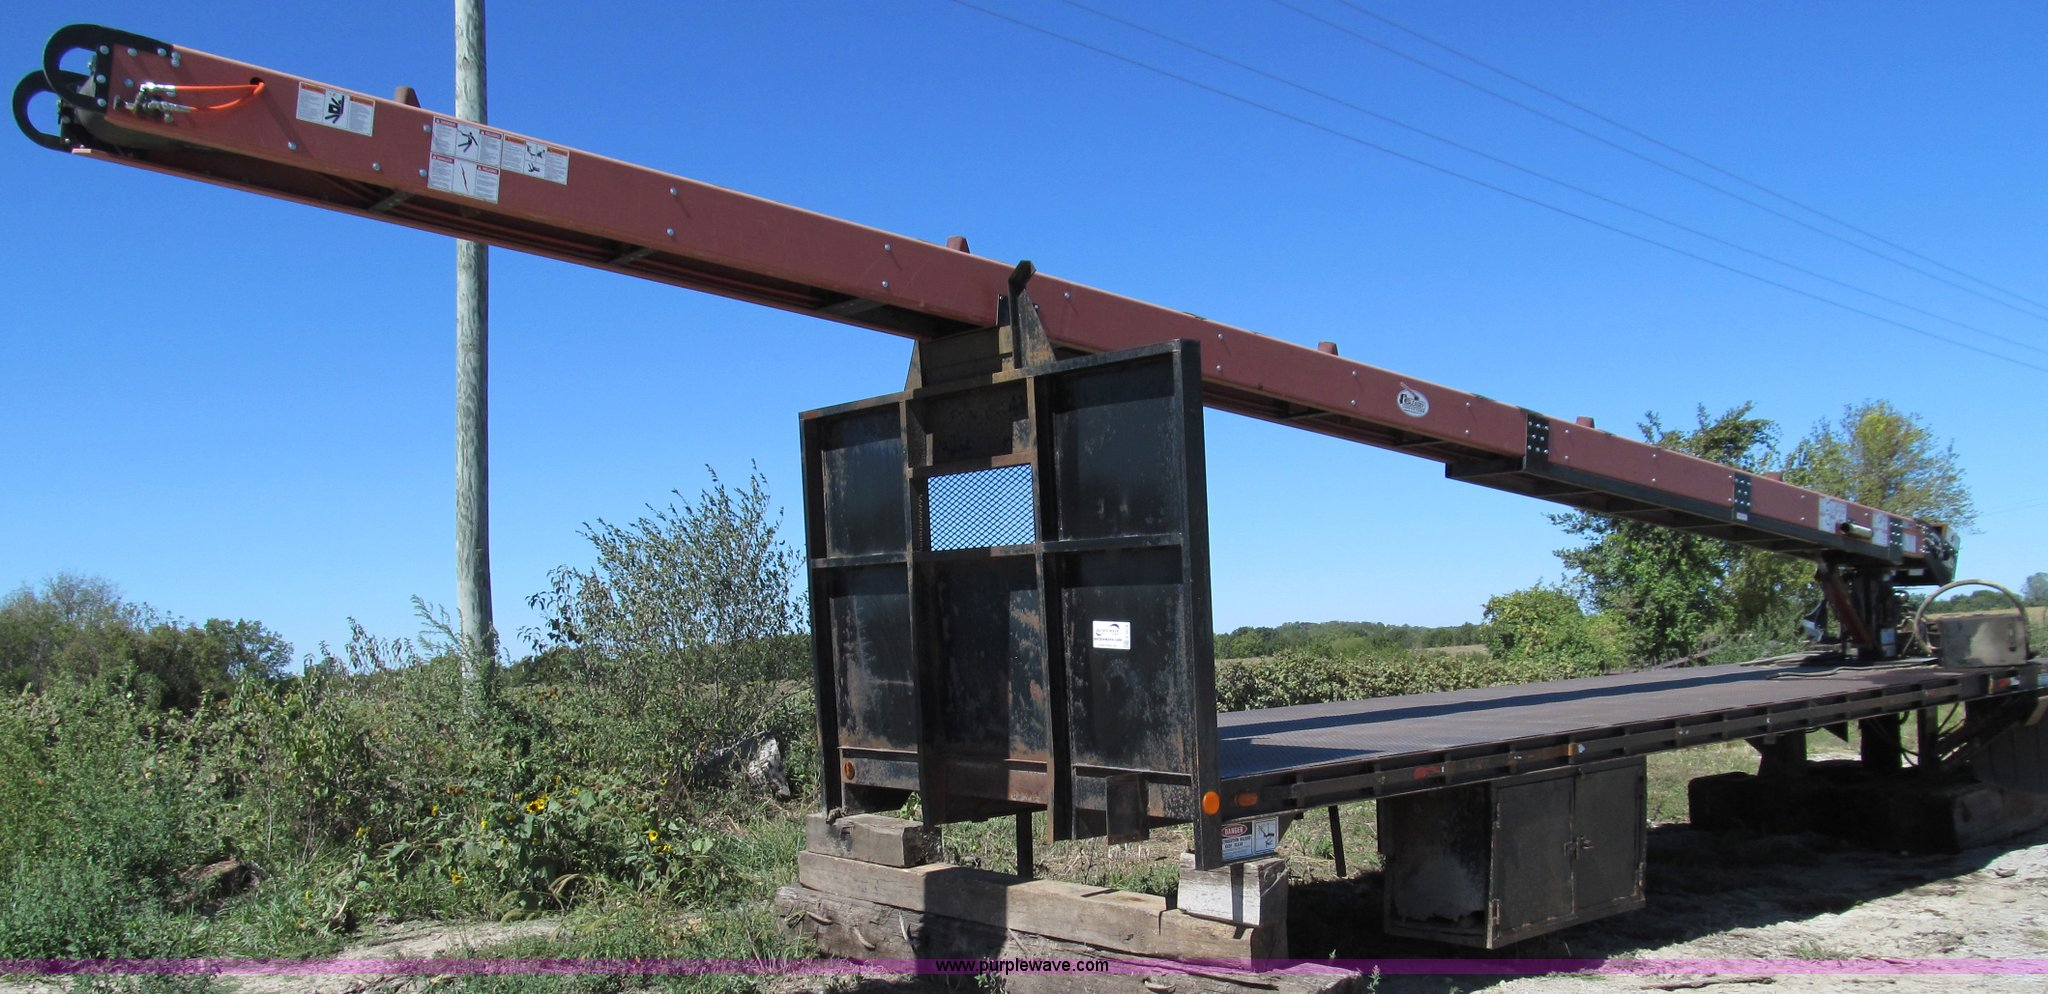 2009 Cleasby shingle conveyor | Item E3518 | SOLD! Thursday